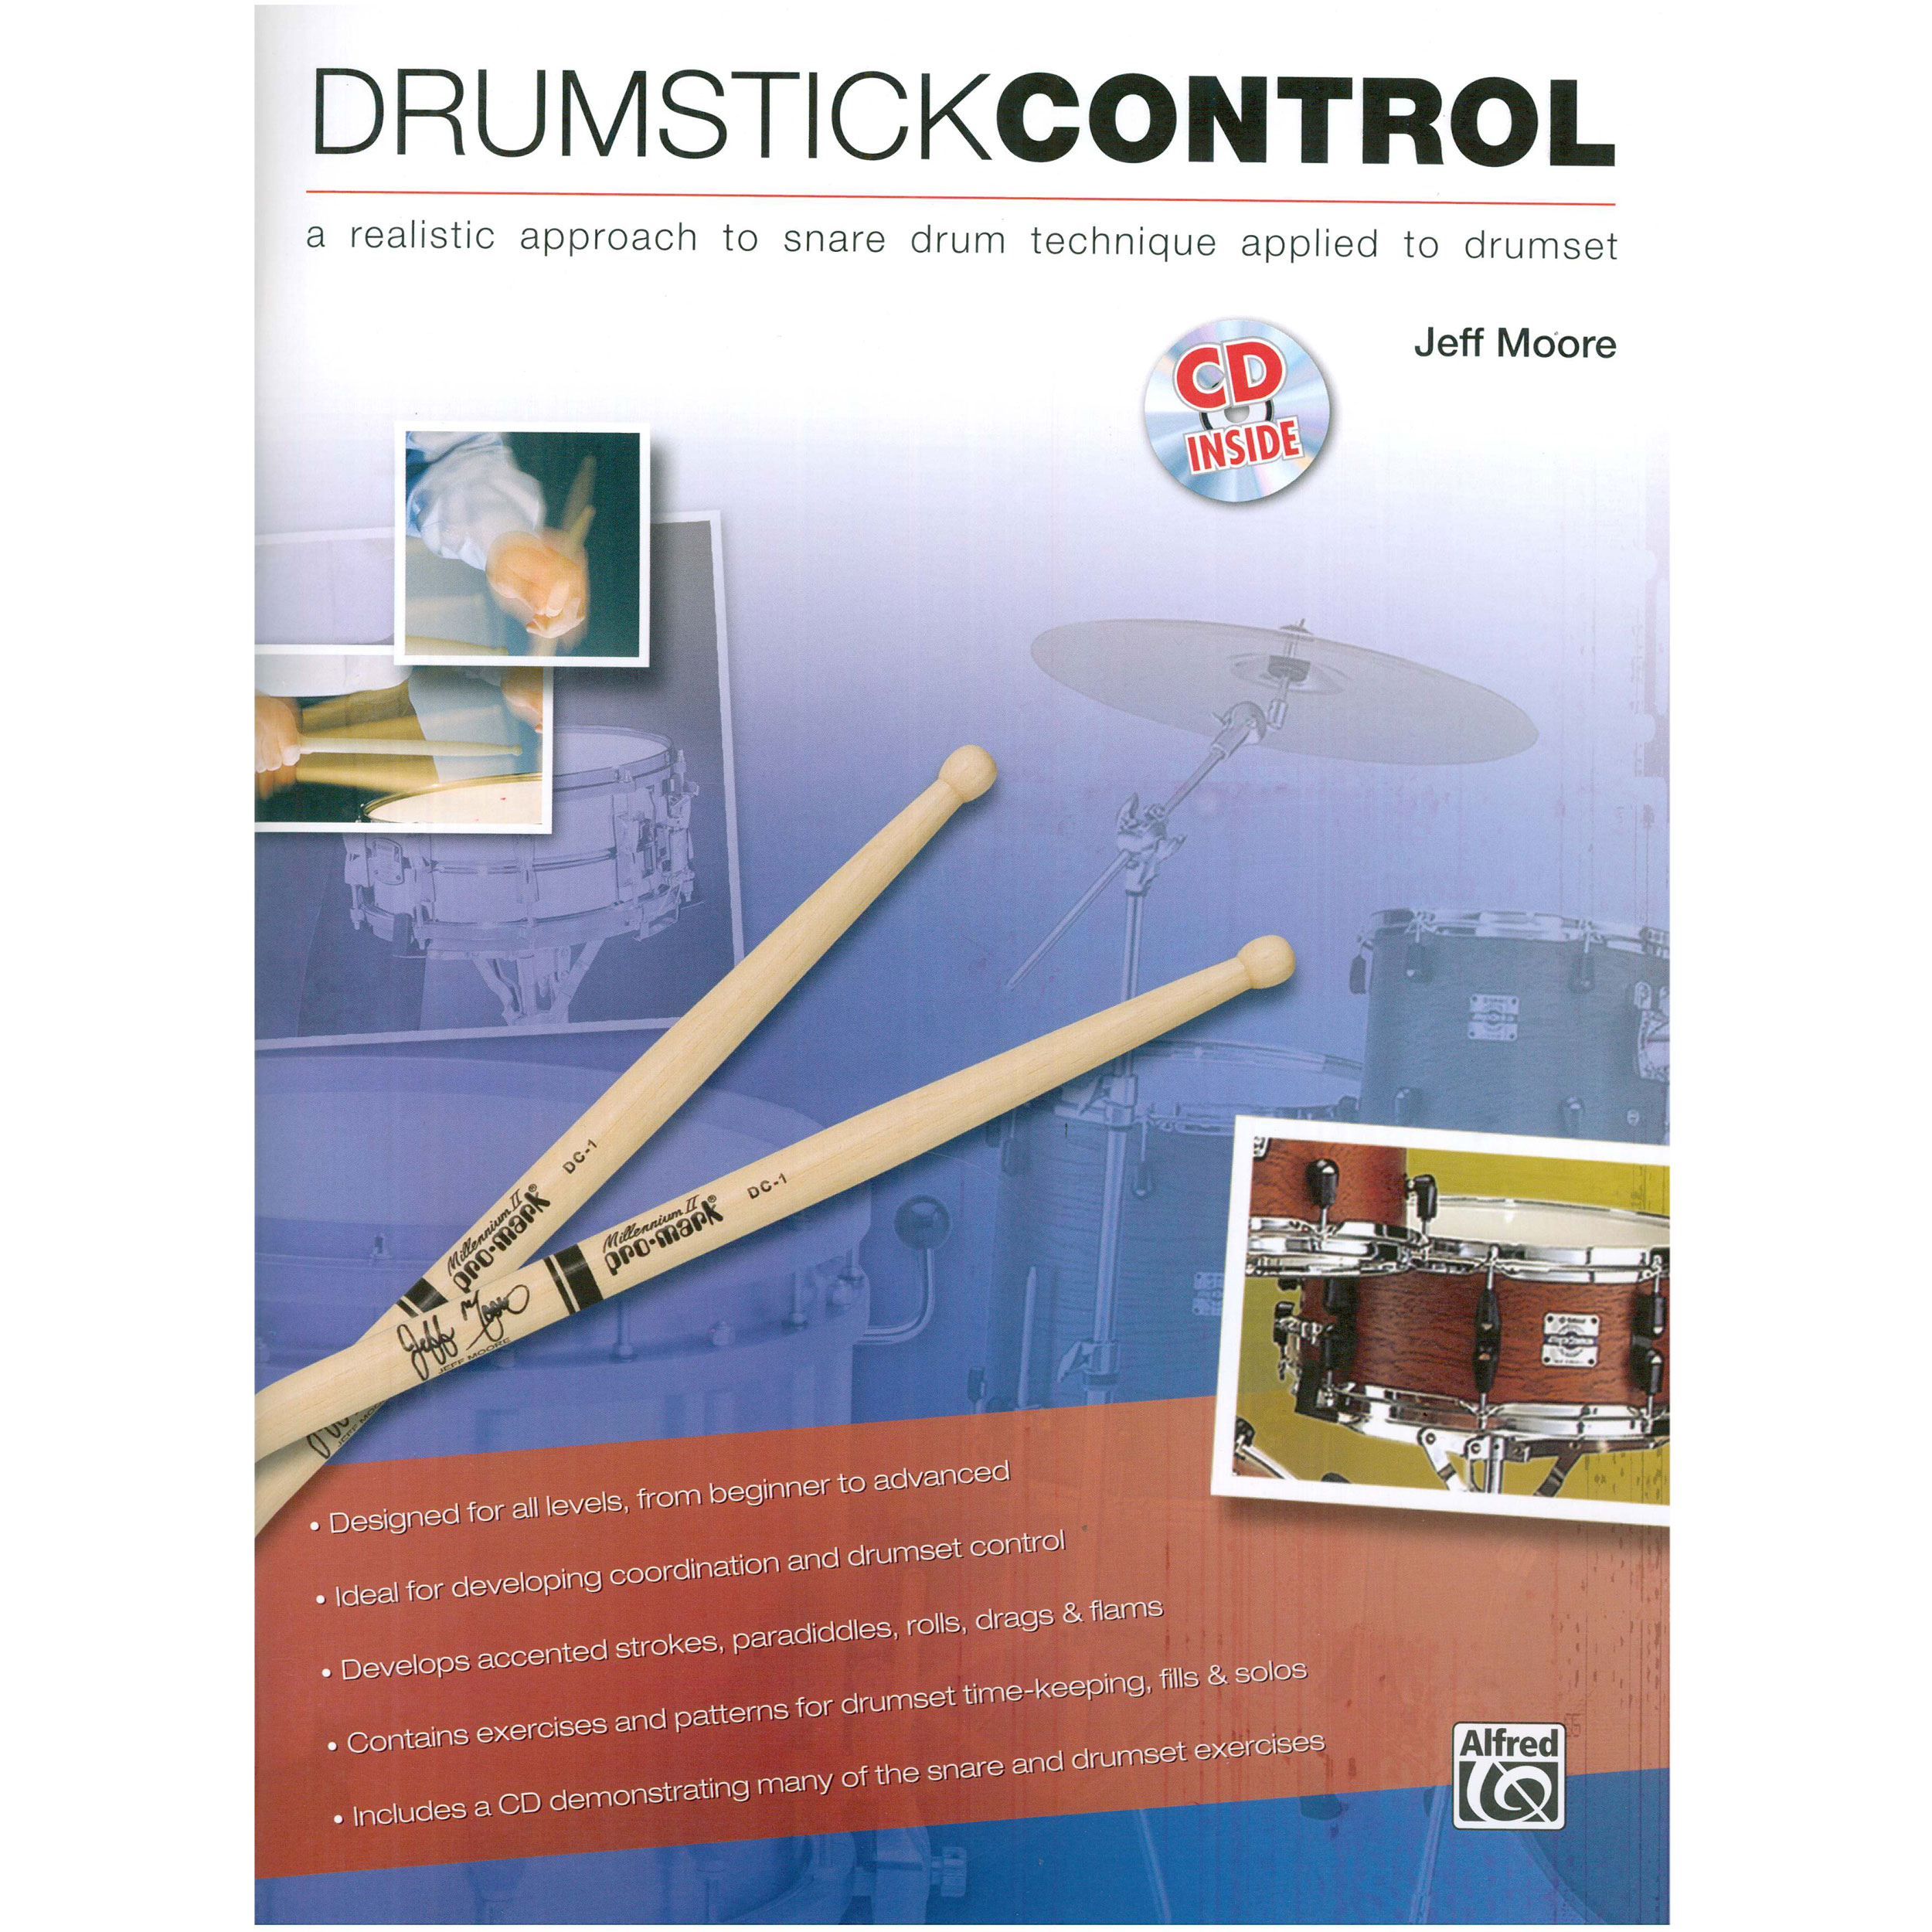 Drumstick Control by Jeff Moore